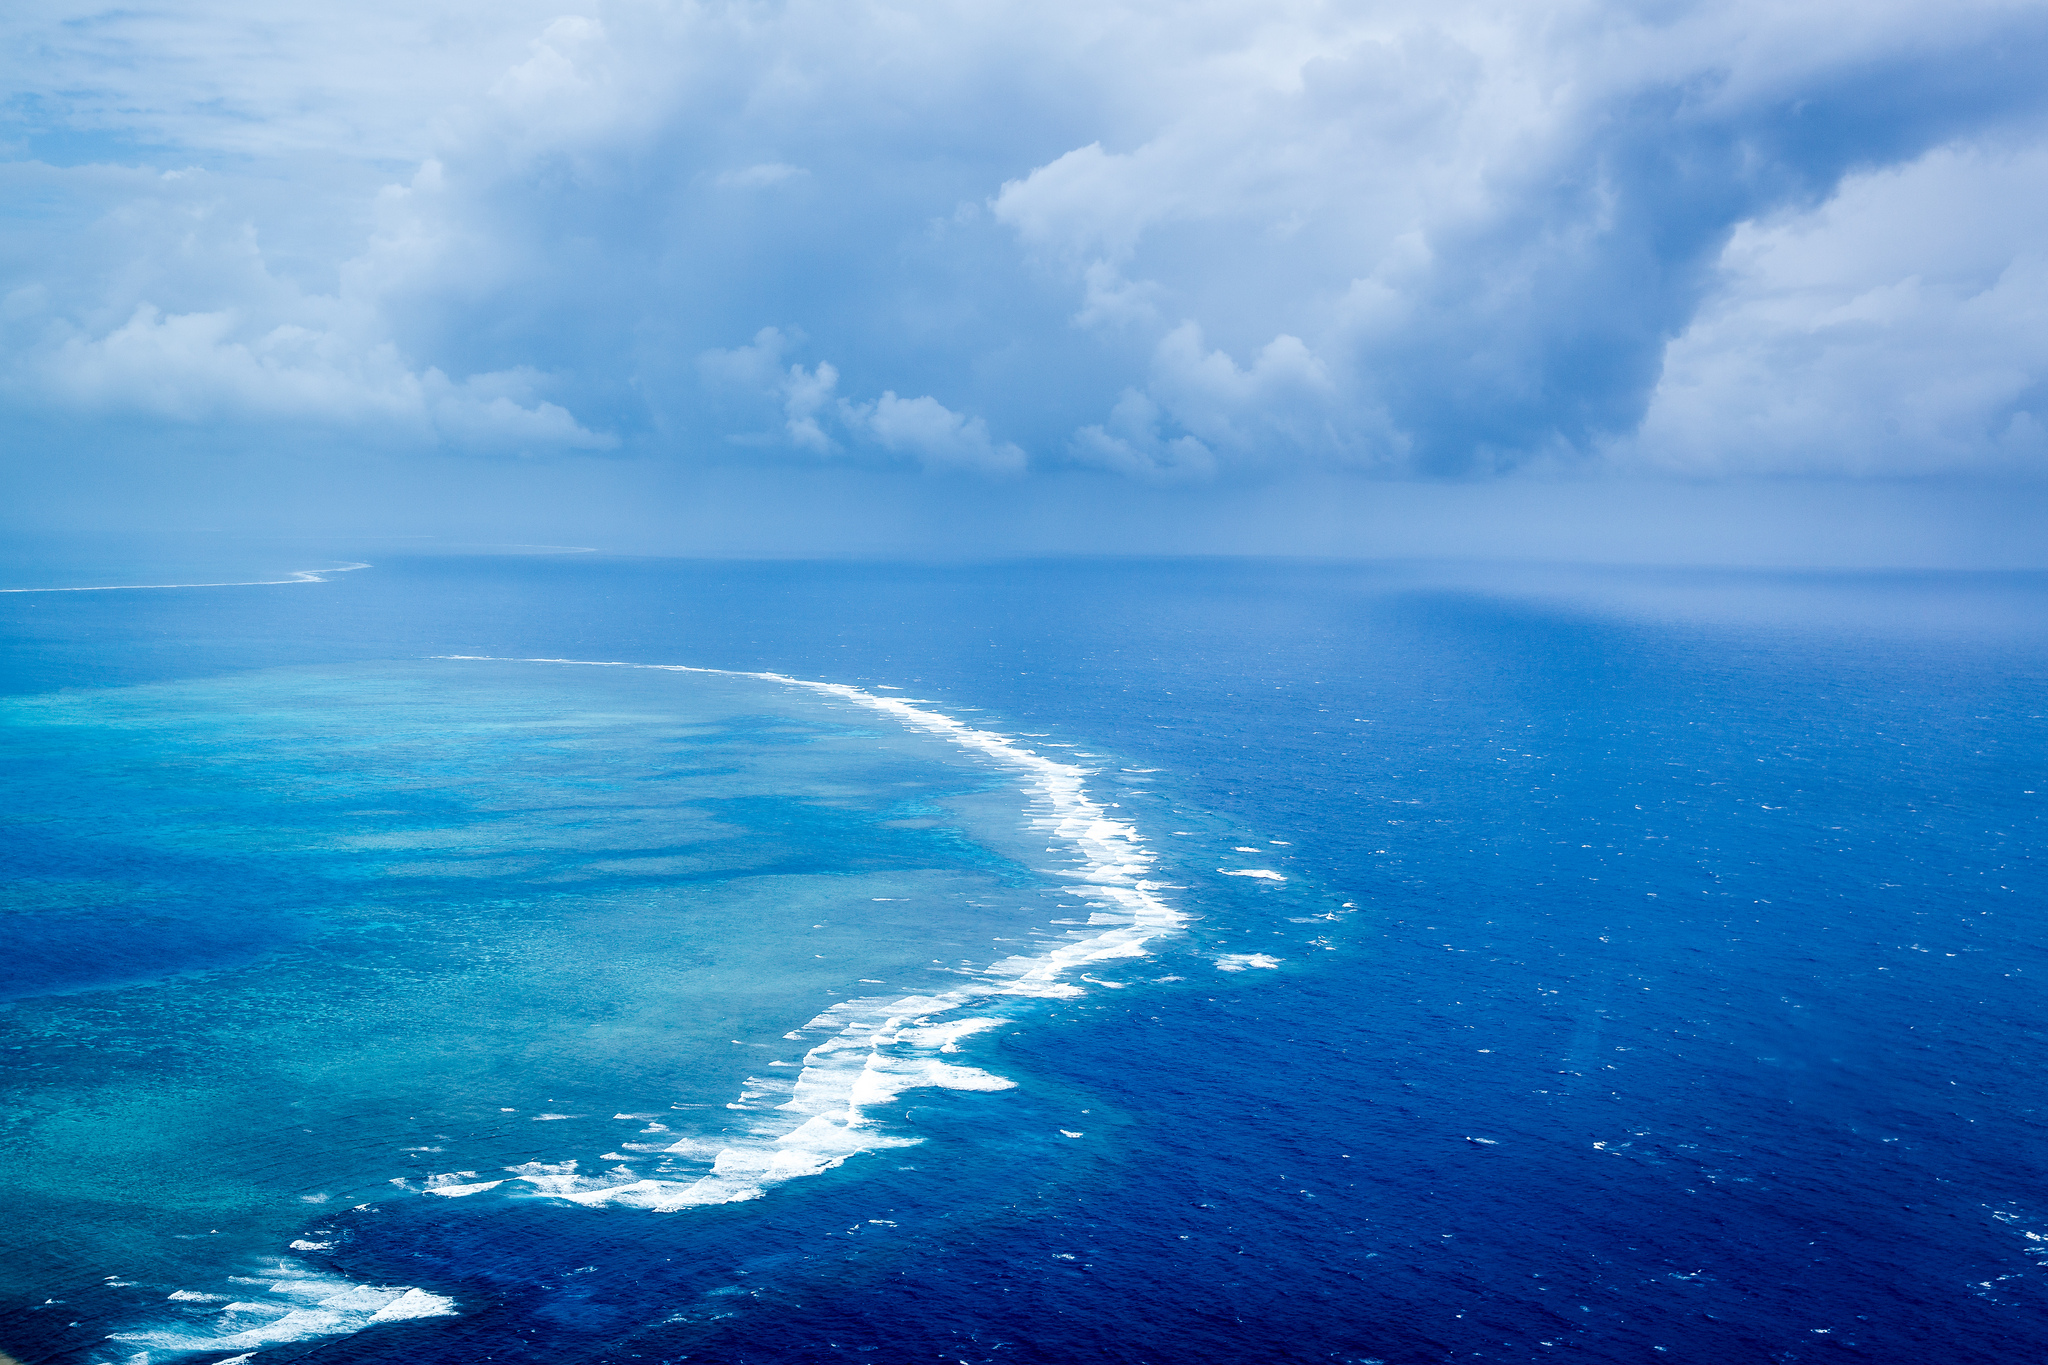 Sea temperatures likely readable real-time with new model